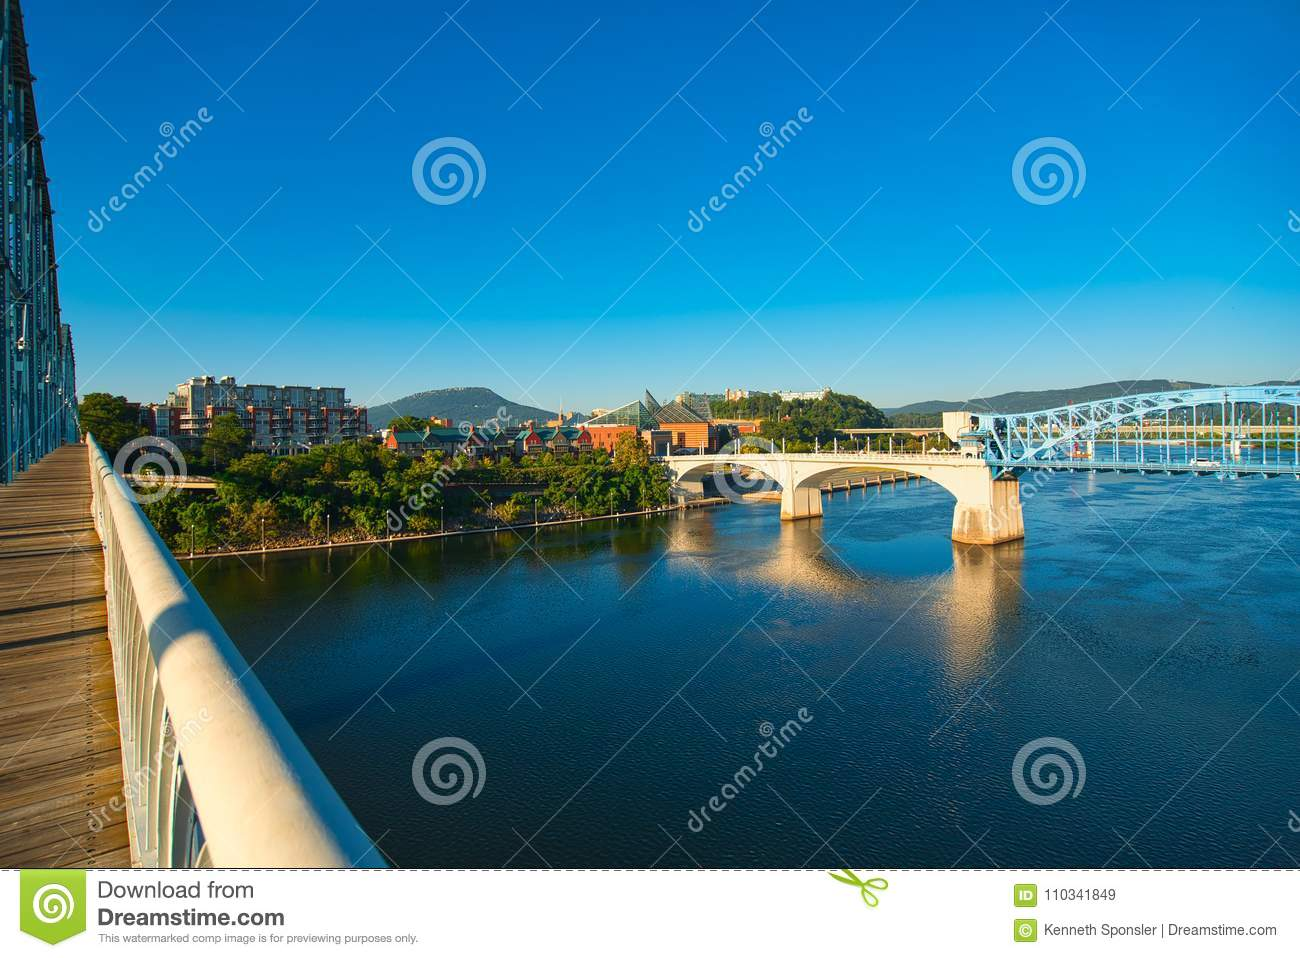 Chattanooga river view stock image  Image of outdoor - 110341849